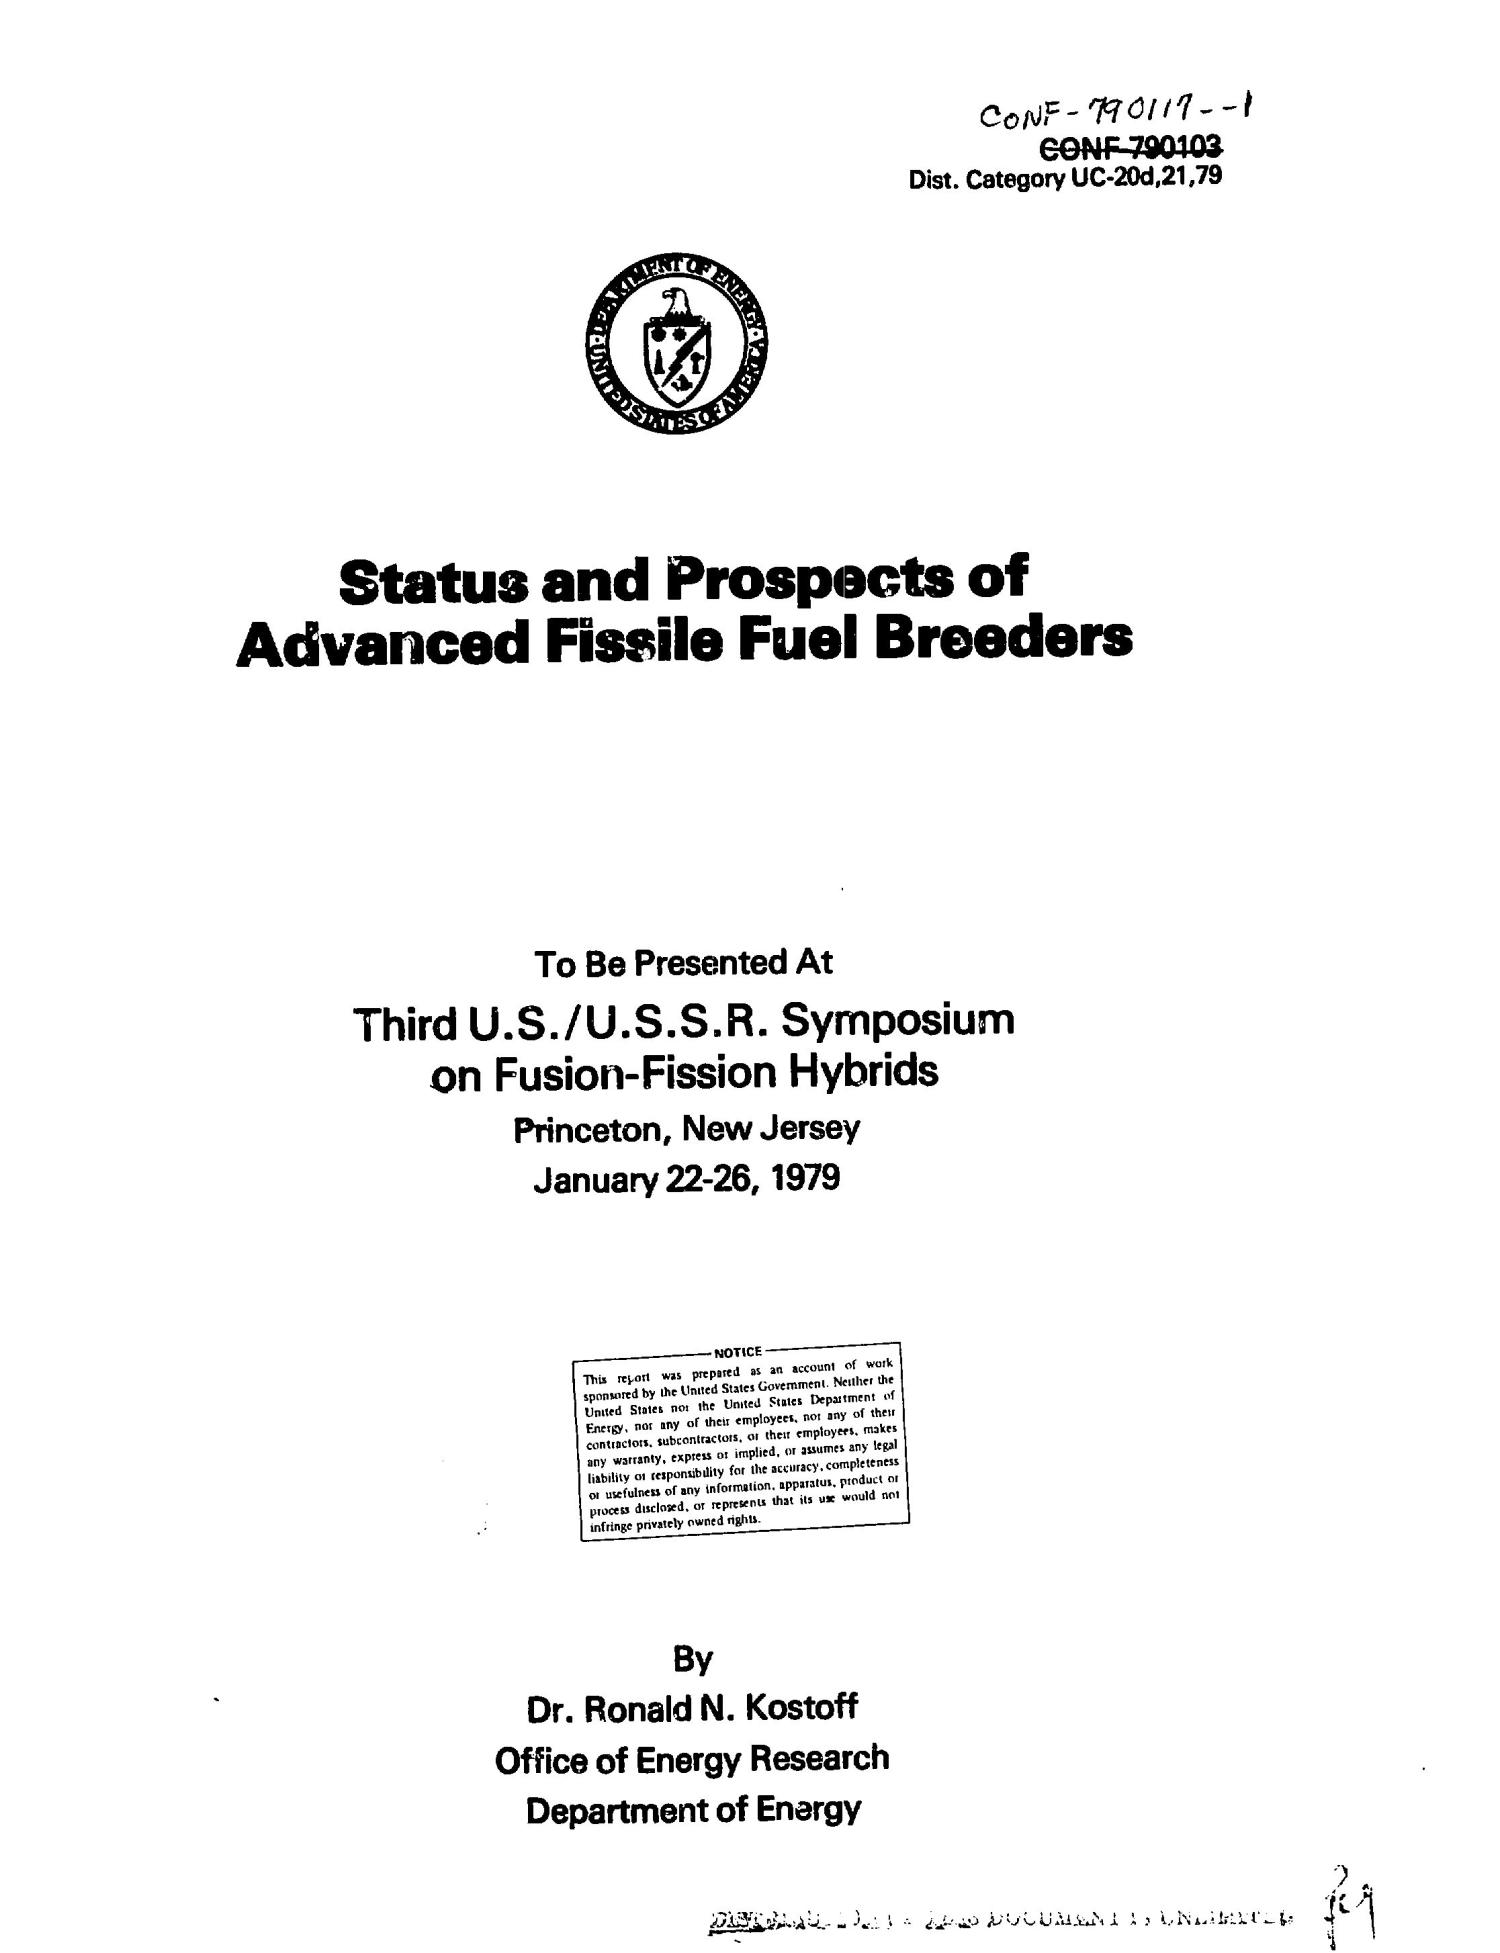 Status and prospects of advanced fissile fuel breeders                                                                                                      [Sequence #]: 2 of 130